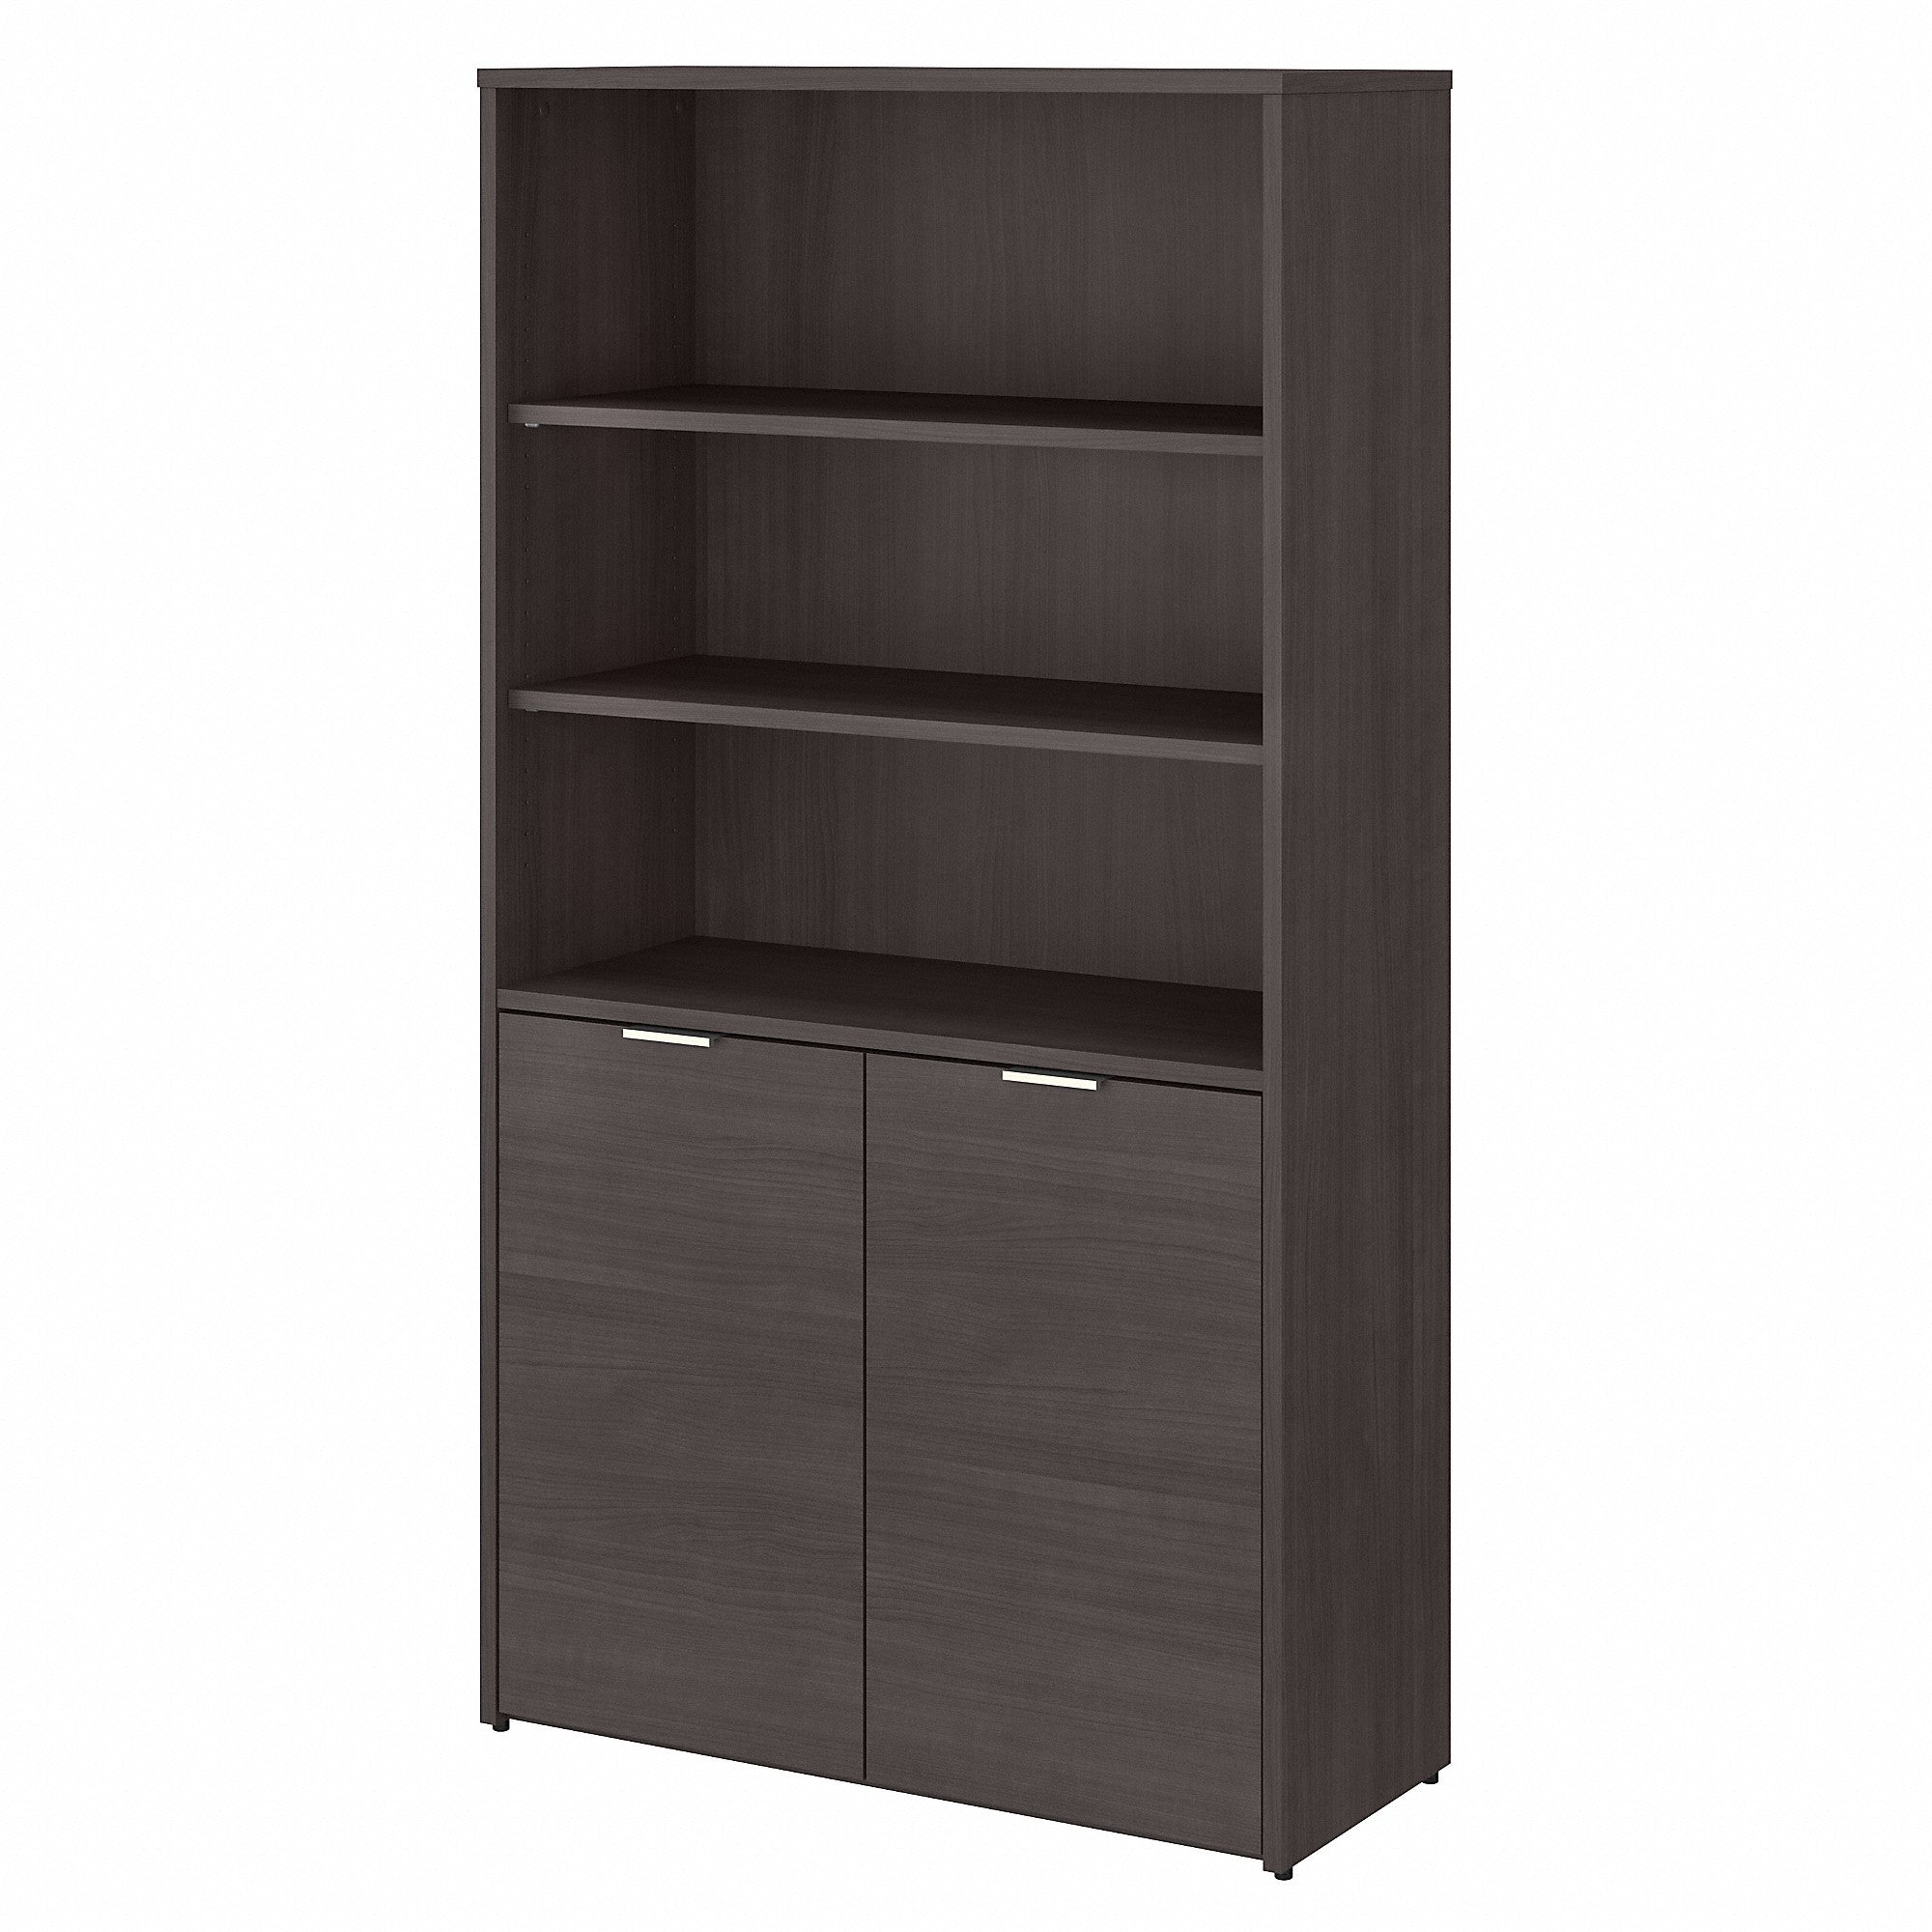 Bush Business Furniture Jamestown 5 Shelf Bookcase with Doors